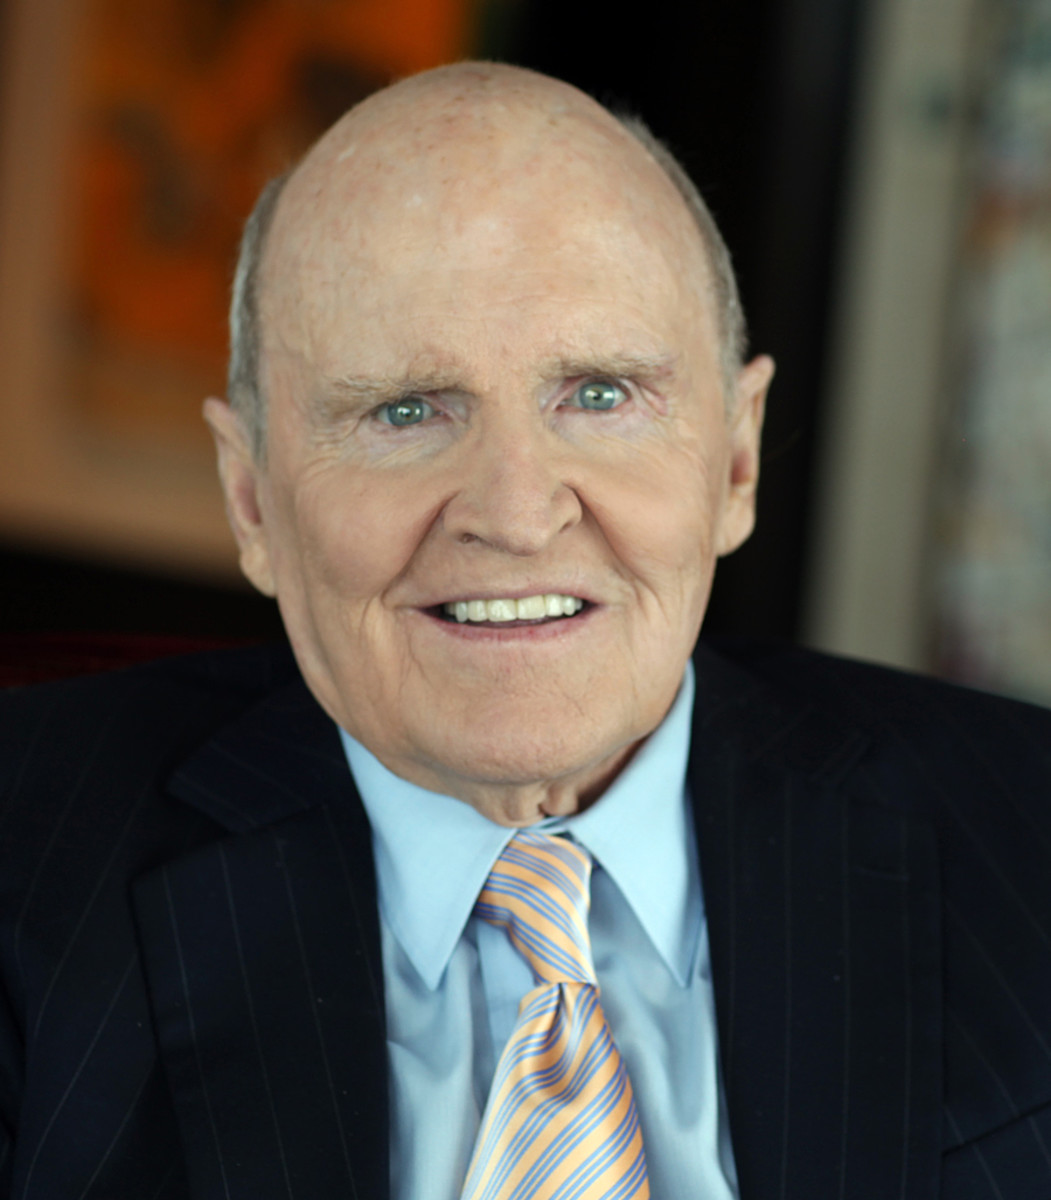 Jack Welch led GE for 20 years with a simple vision: Each division of the company would be #1 or #2 in its field.